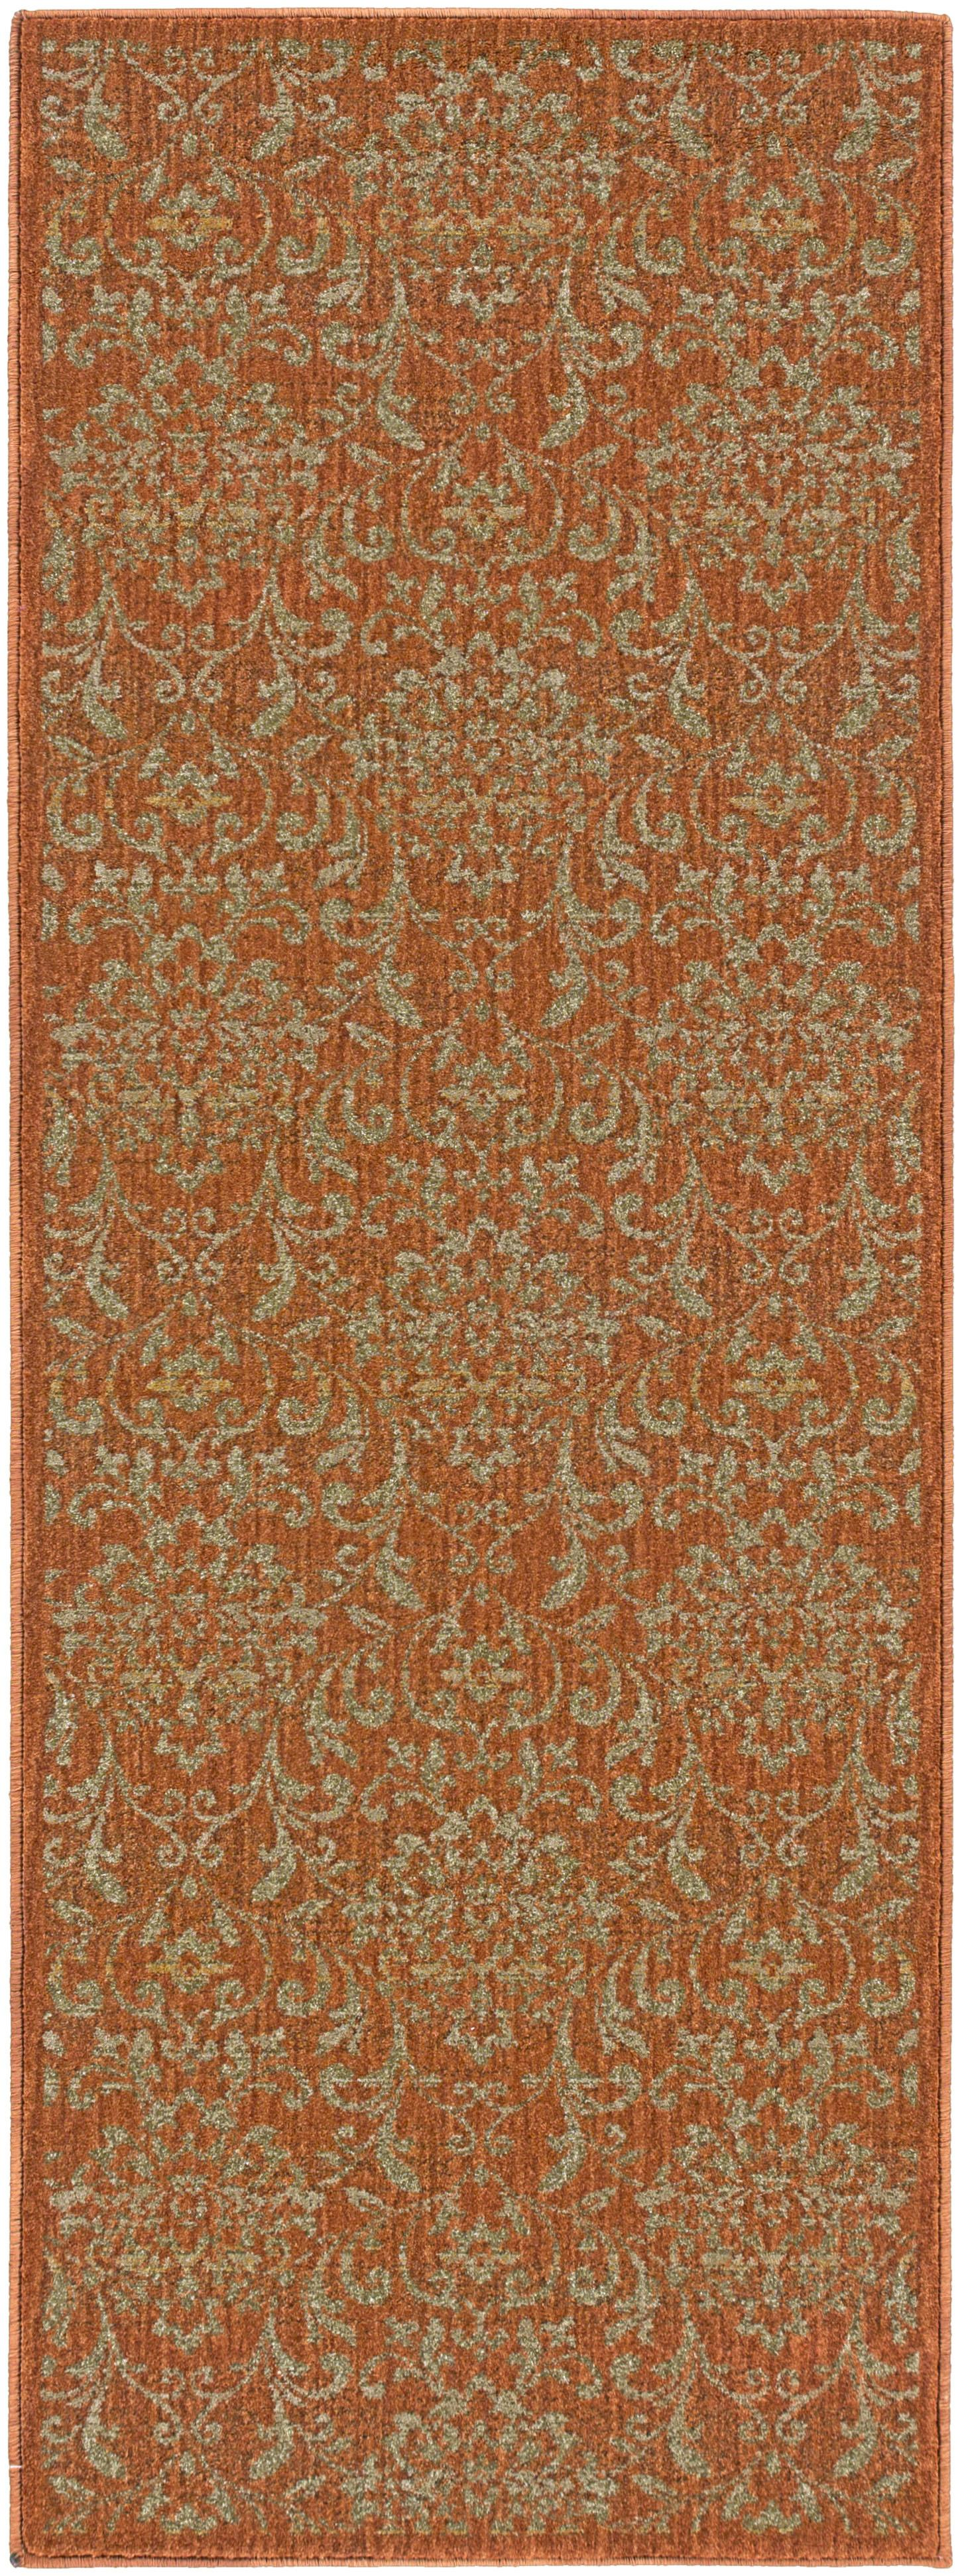 "Surya Arabesque 2'7"" x 7'3"" - Item Number: ABS3007-2773"